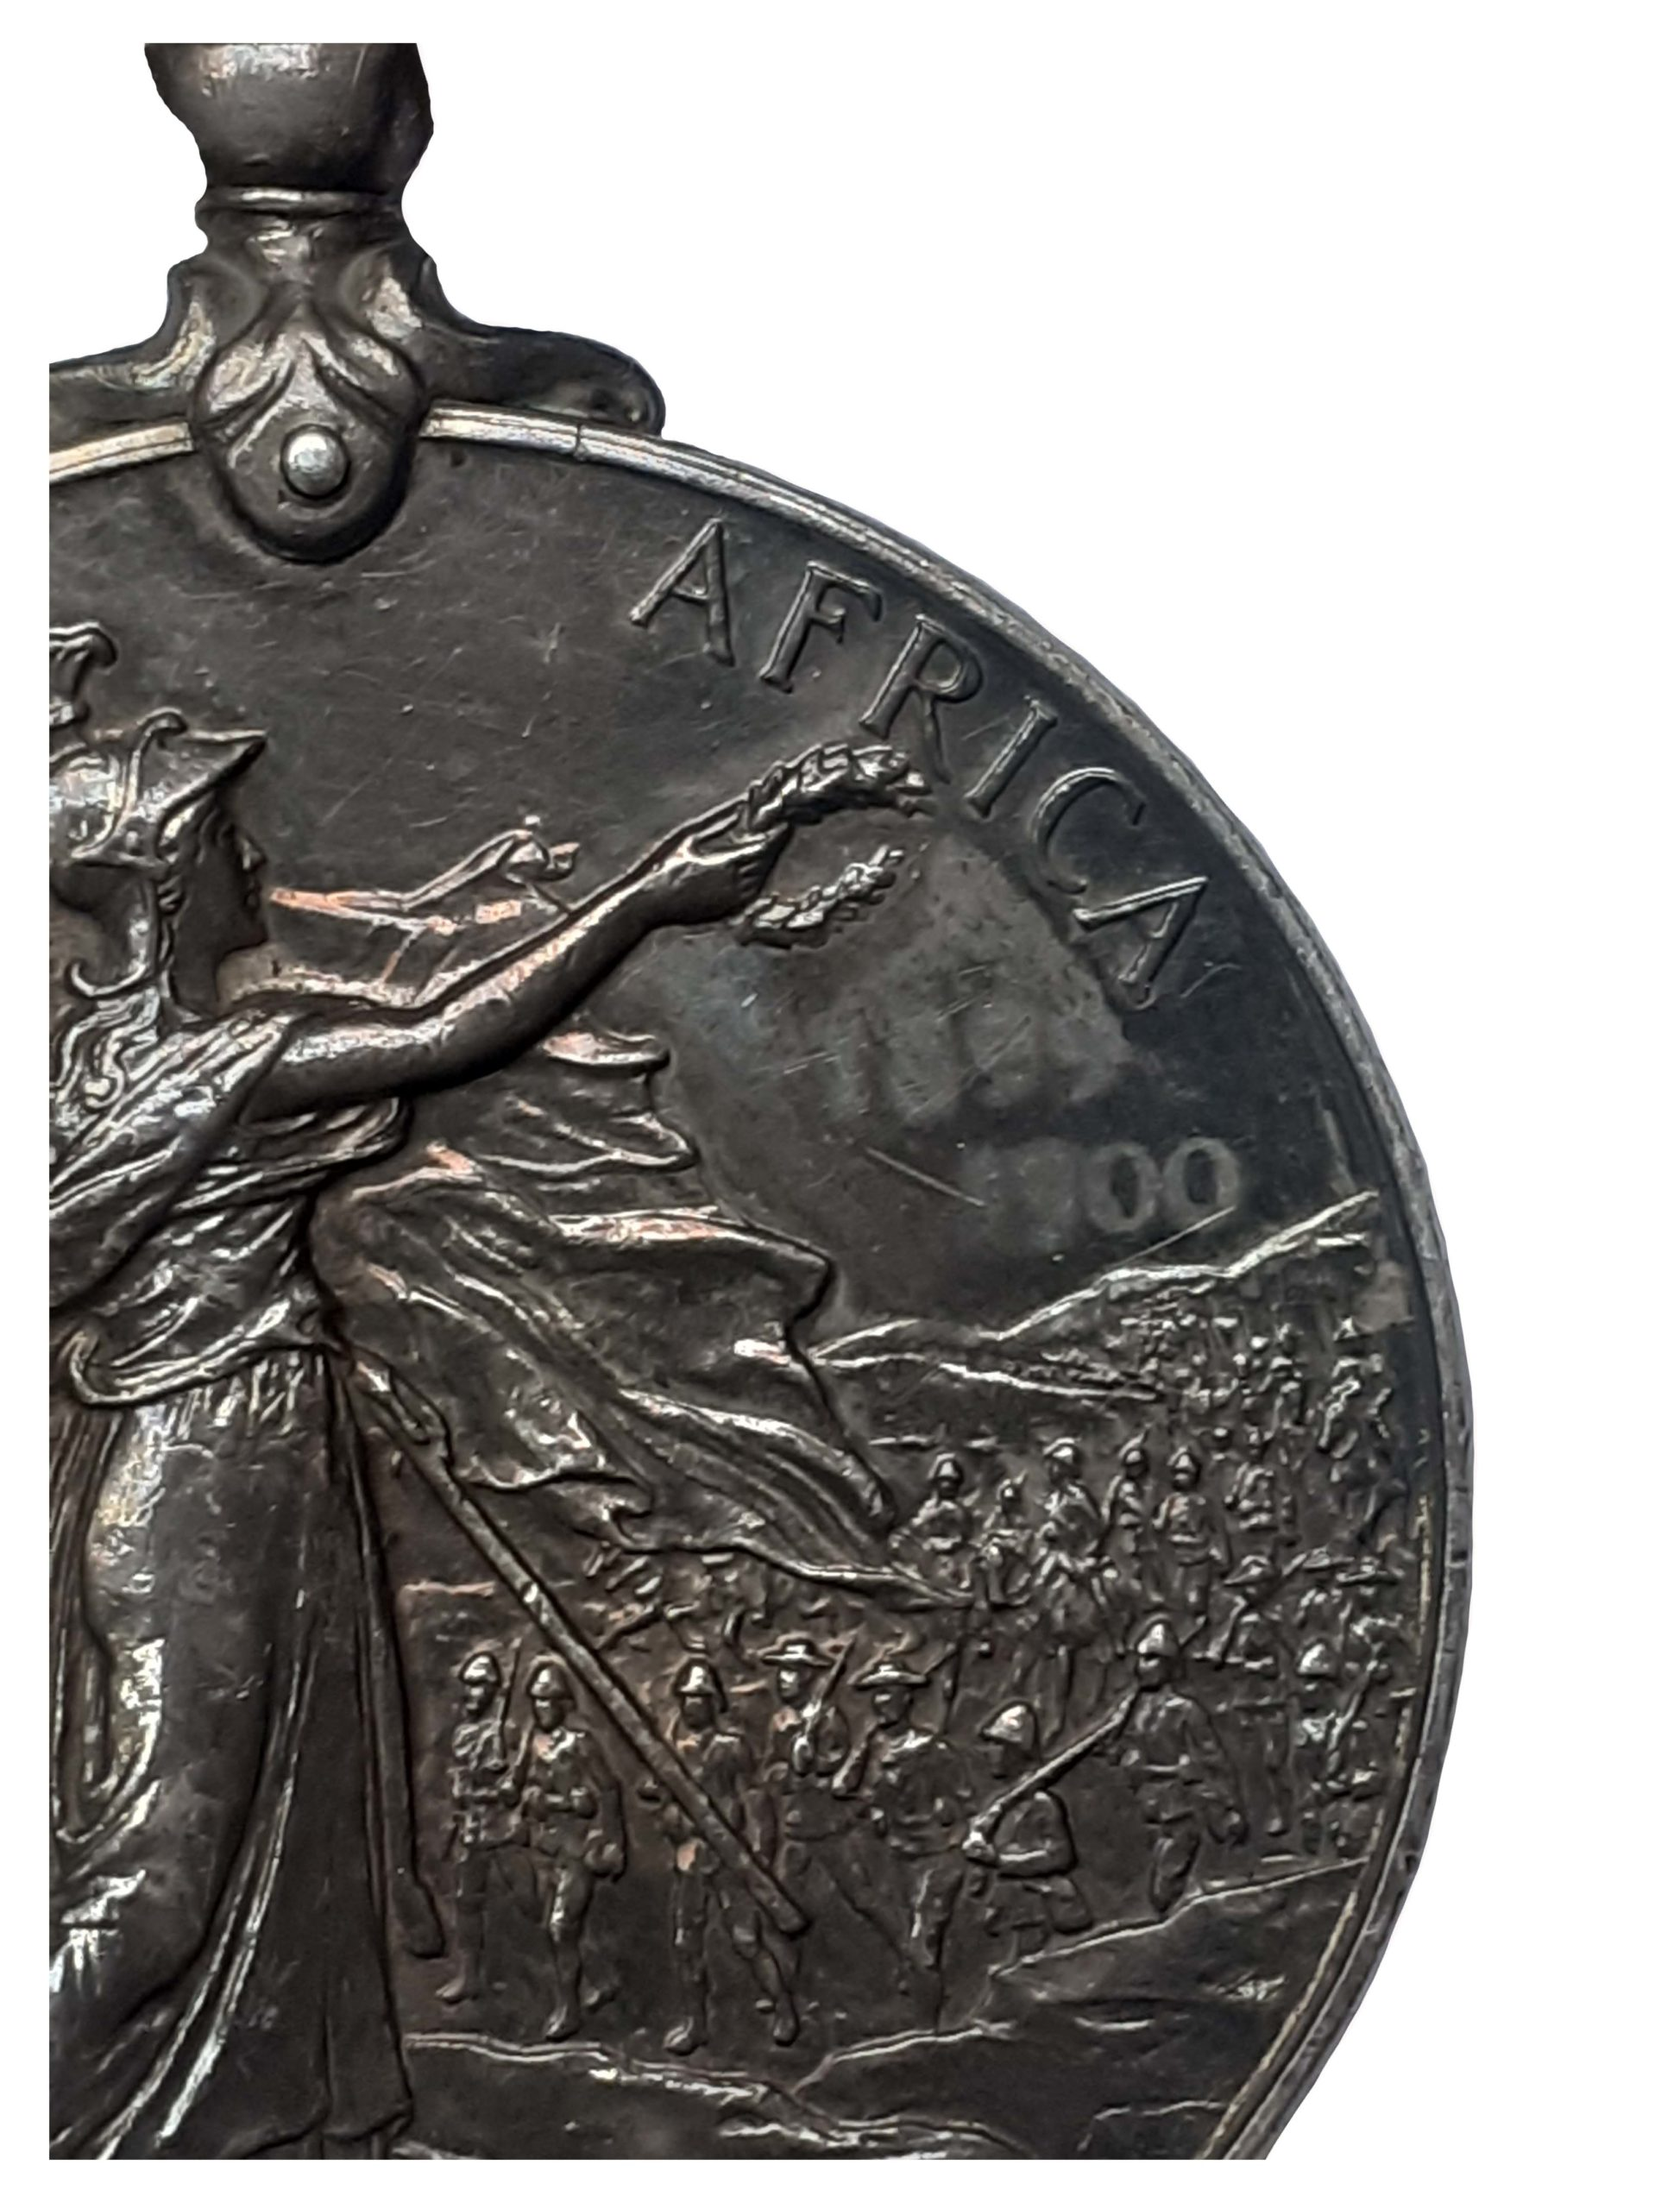 A Talana and Defence of Ladysmith Queen's South Africa Medal, 2nd type Ghost Dates, 4 clasps, Talana, Defence of Ladysmith, Orange Free State, Transvaal, to Private John Watson